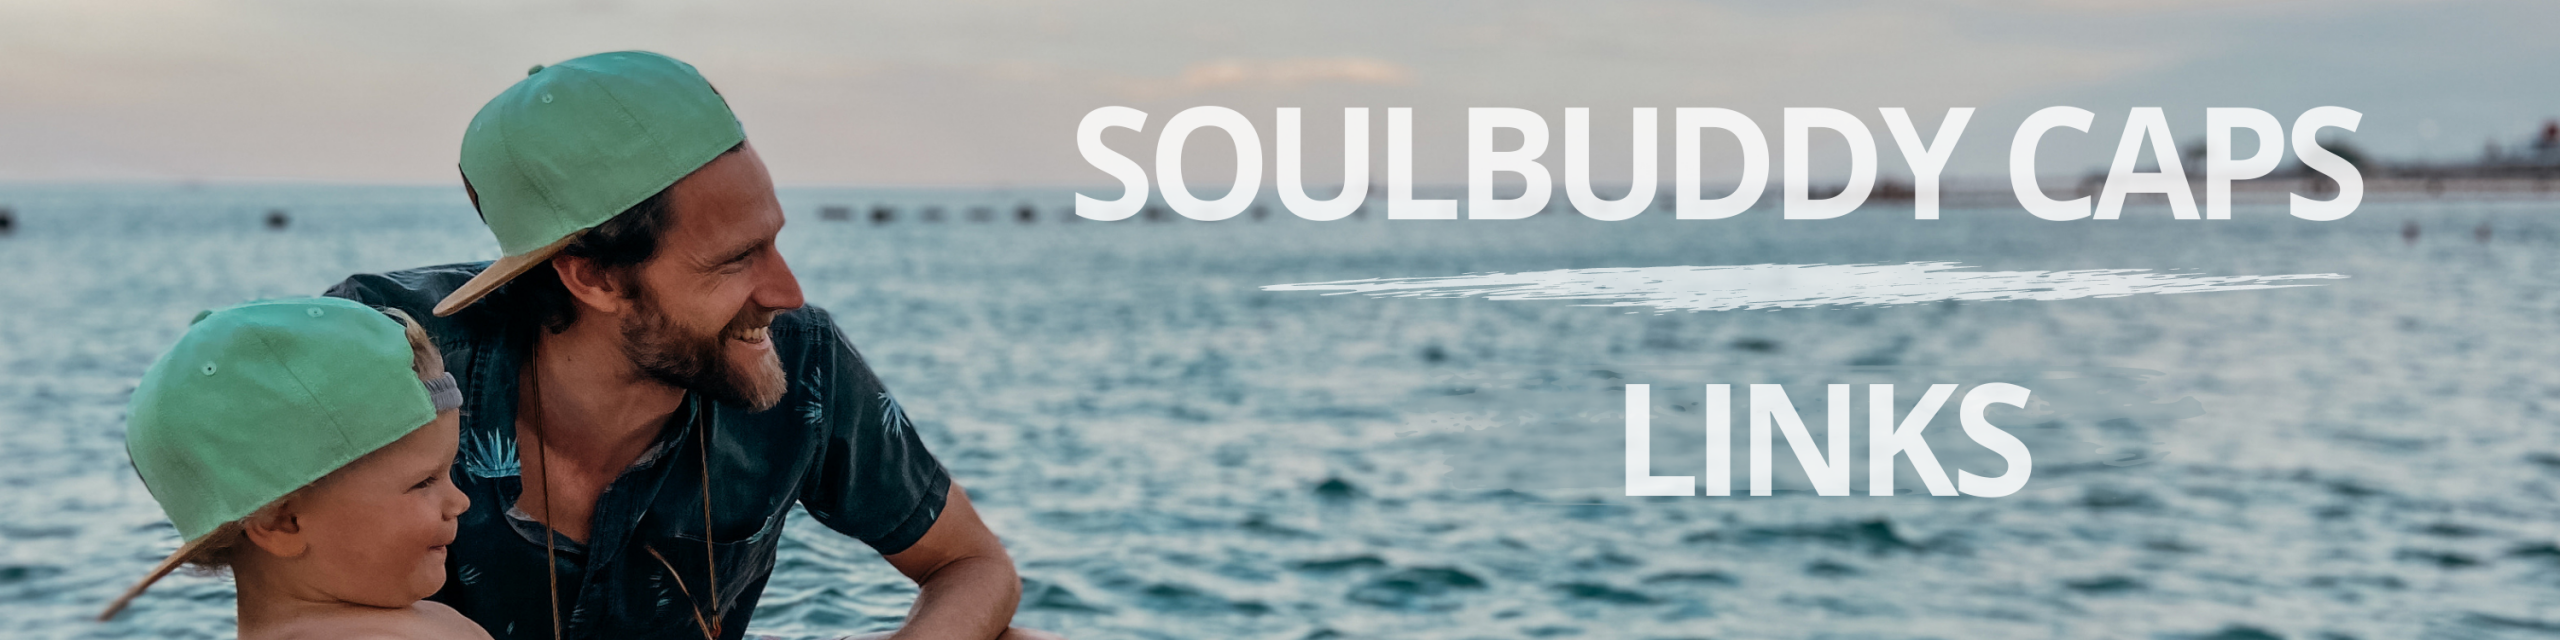 Soulbuddy Caps Linkpage